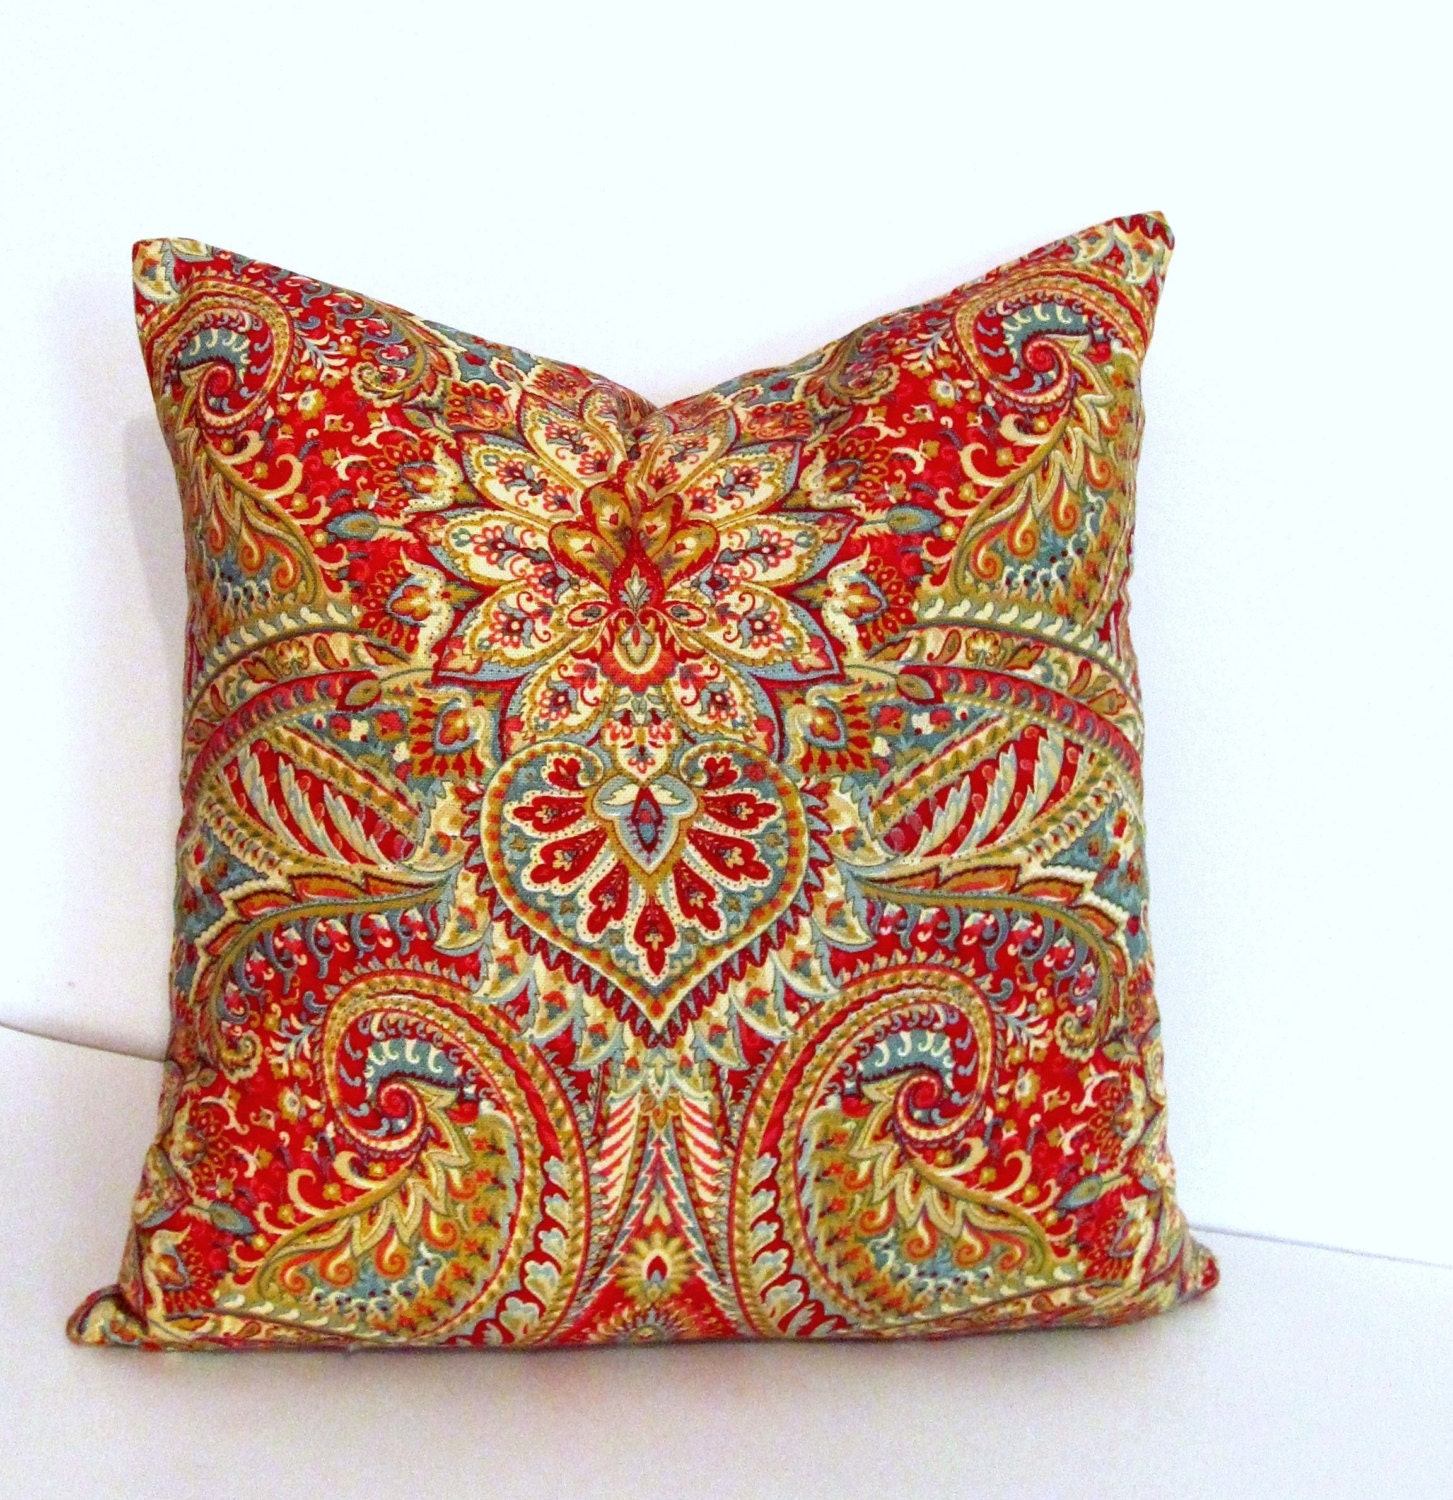 SALE Decorative Pillow Cover 18 by 18 Waverly Swept